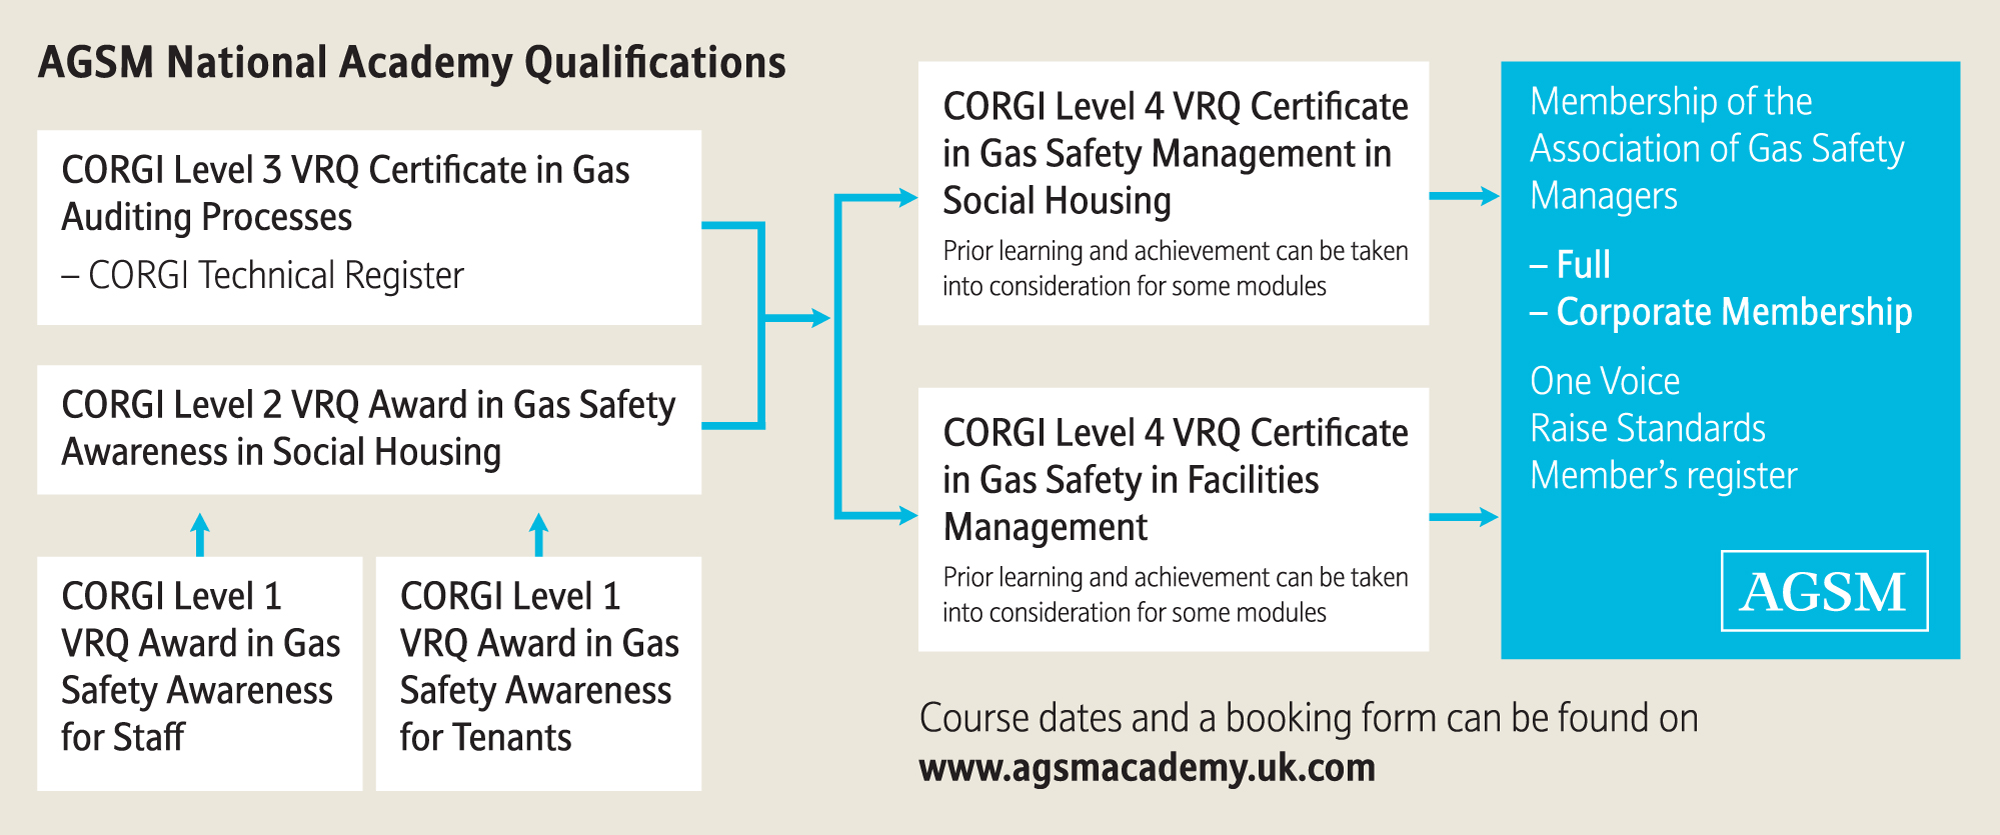 hight resolution of agsm national academy gas qualifications flow chart